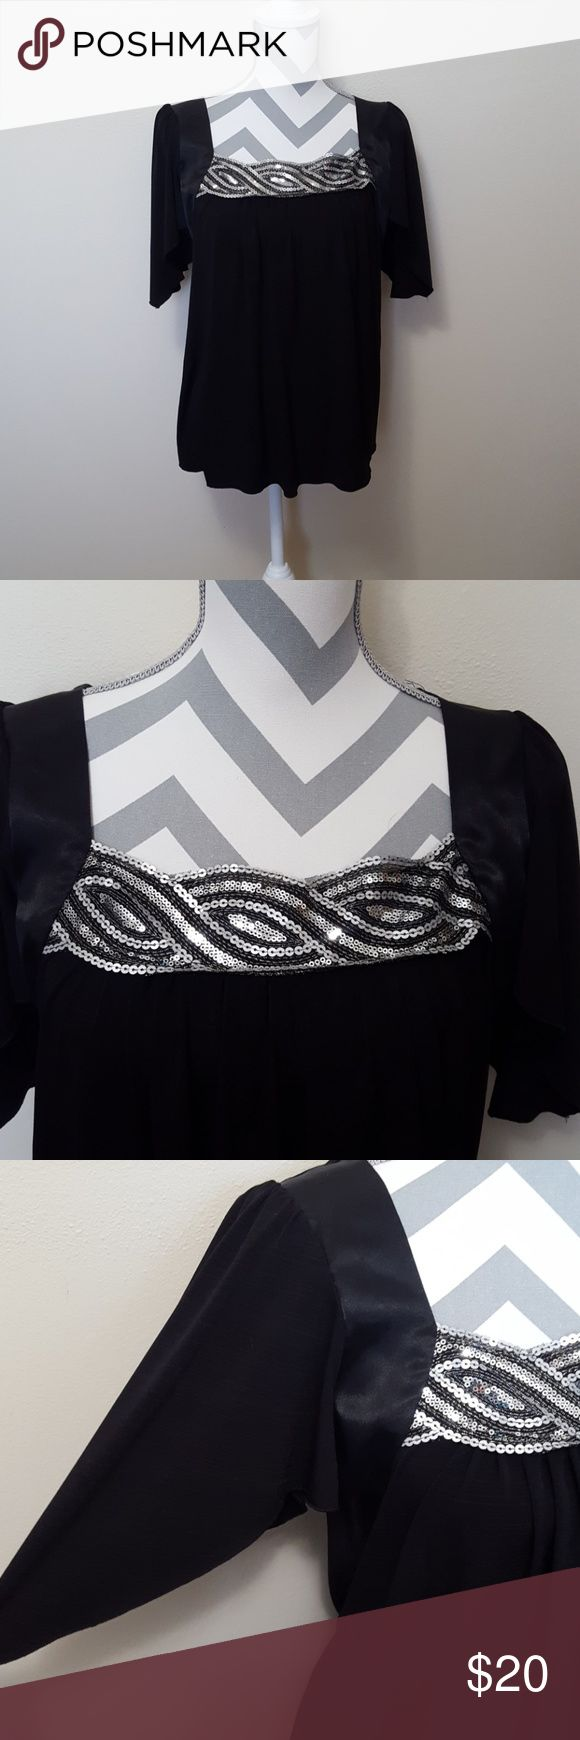 XOXO Embellished Black Sequin Dress Blouse Price Reduced! XOXO brand in a size Medium but can fit a Large. The bottom is very flowy and could even be used as a maternity top. The neckline is embellished with bling sequins and also has batwing sleeves. It would be the perfect blouse for a date night or a night on the town. Body: 95% Polyester and 5% Spandex. Contrast: 100% Polyester.  Smoke free home and fast shipping. I do offer bundles deals as well. Thank you for checking out my closet…